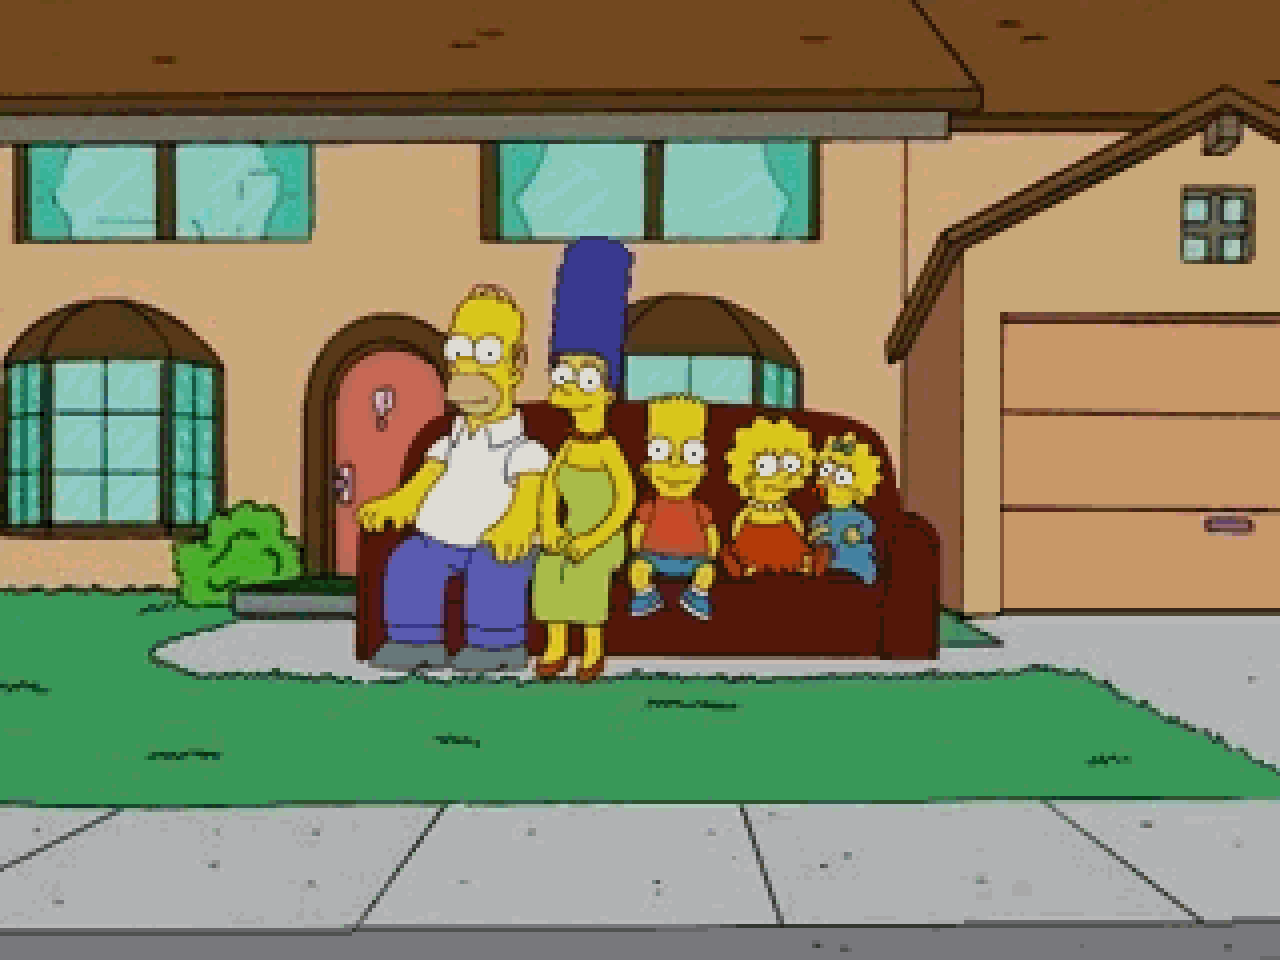 WarnerSimpsonsHouseprev